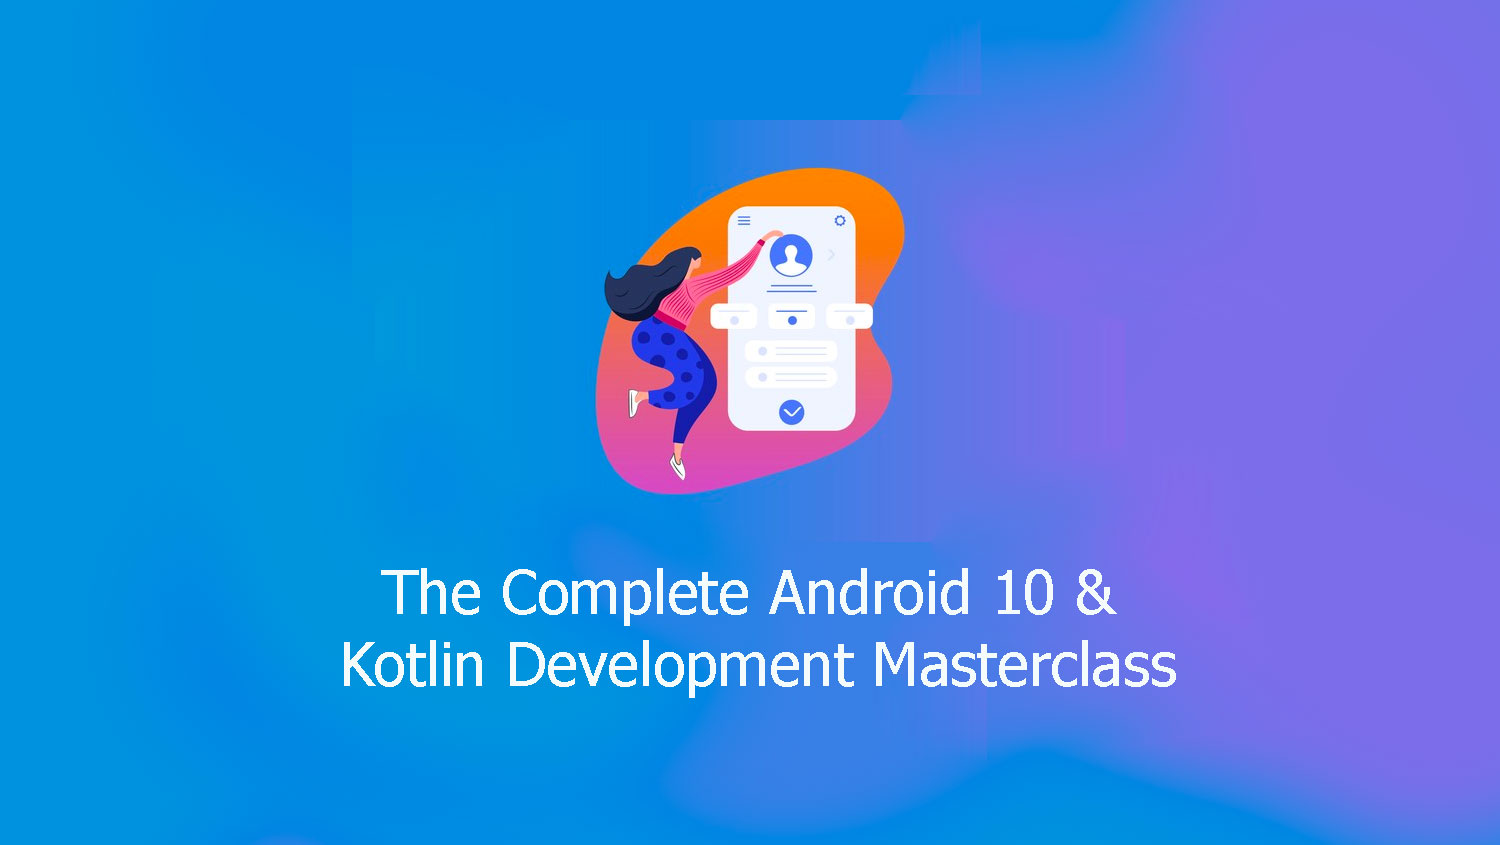 The Complete Android 10 & Kotlin Development Masterclass Free download